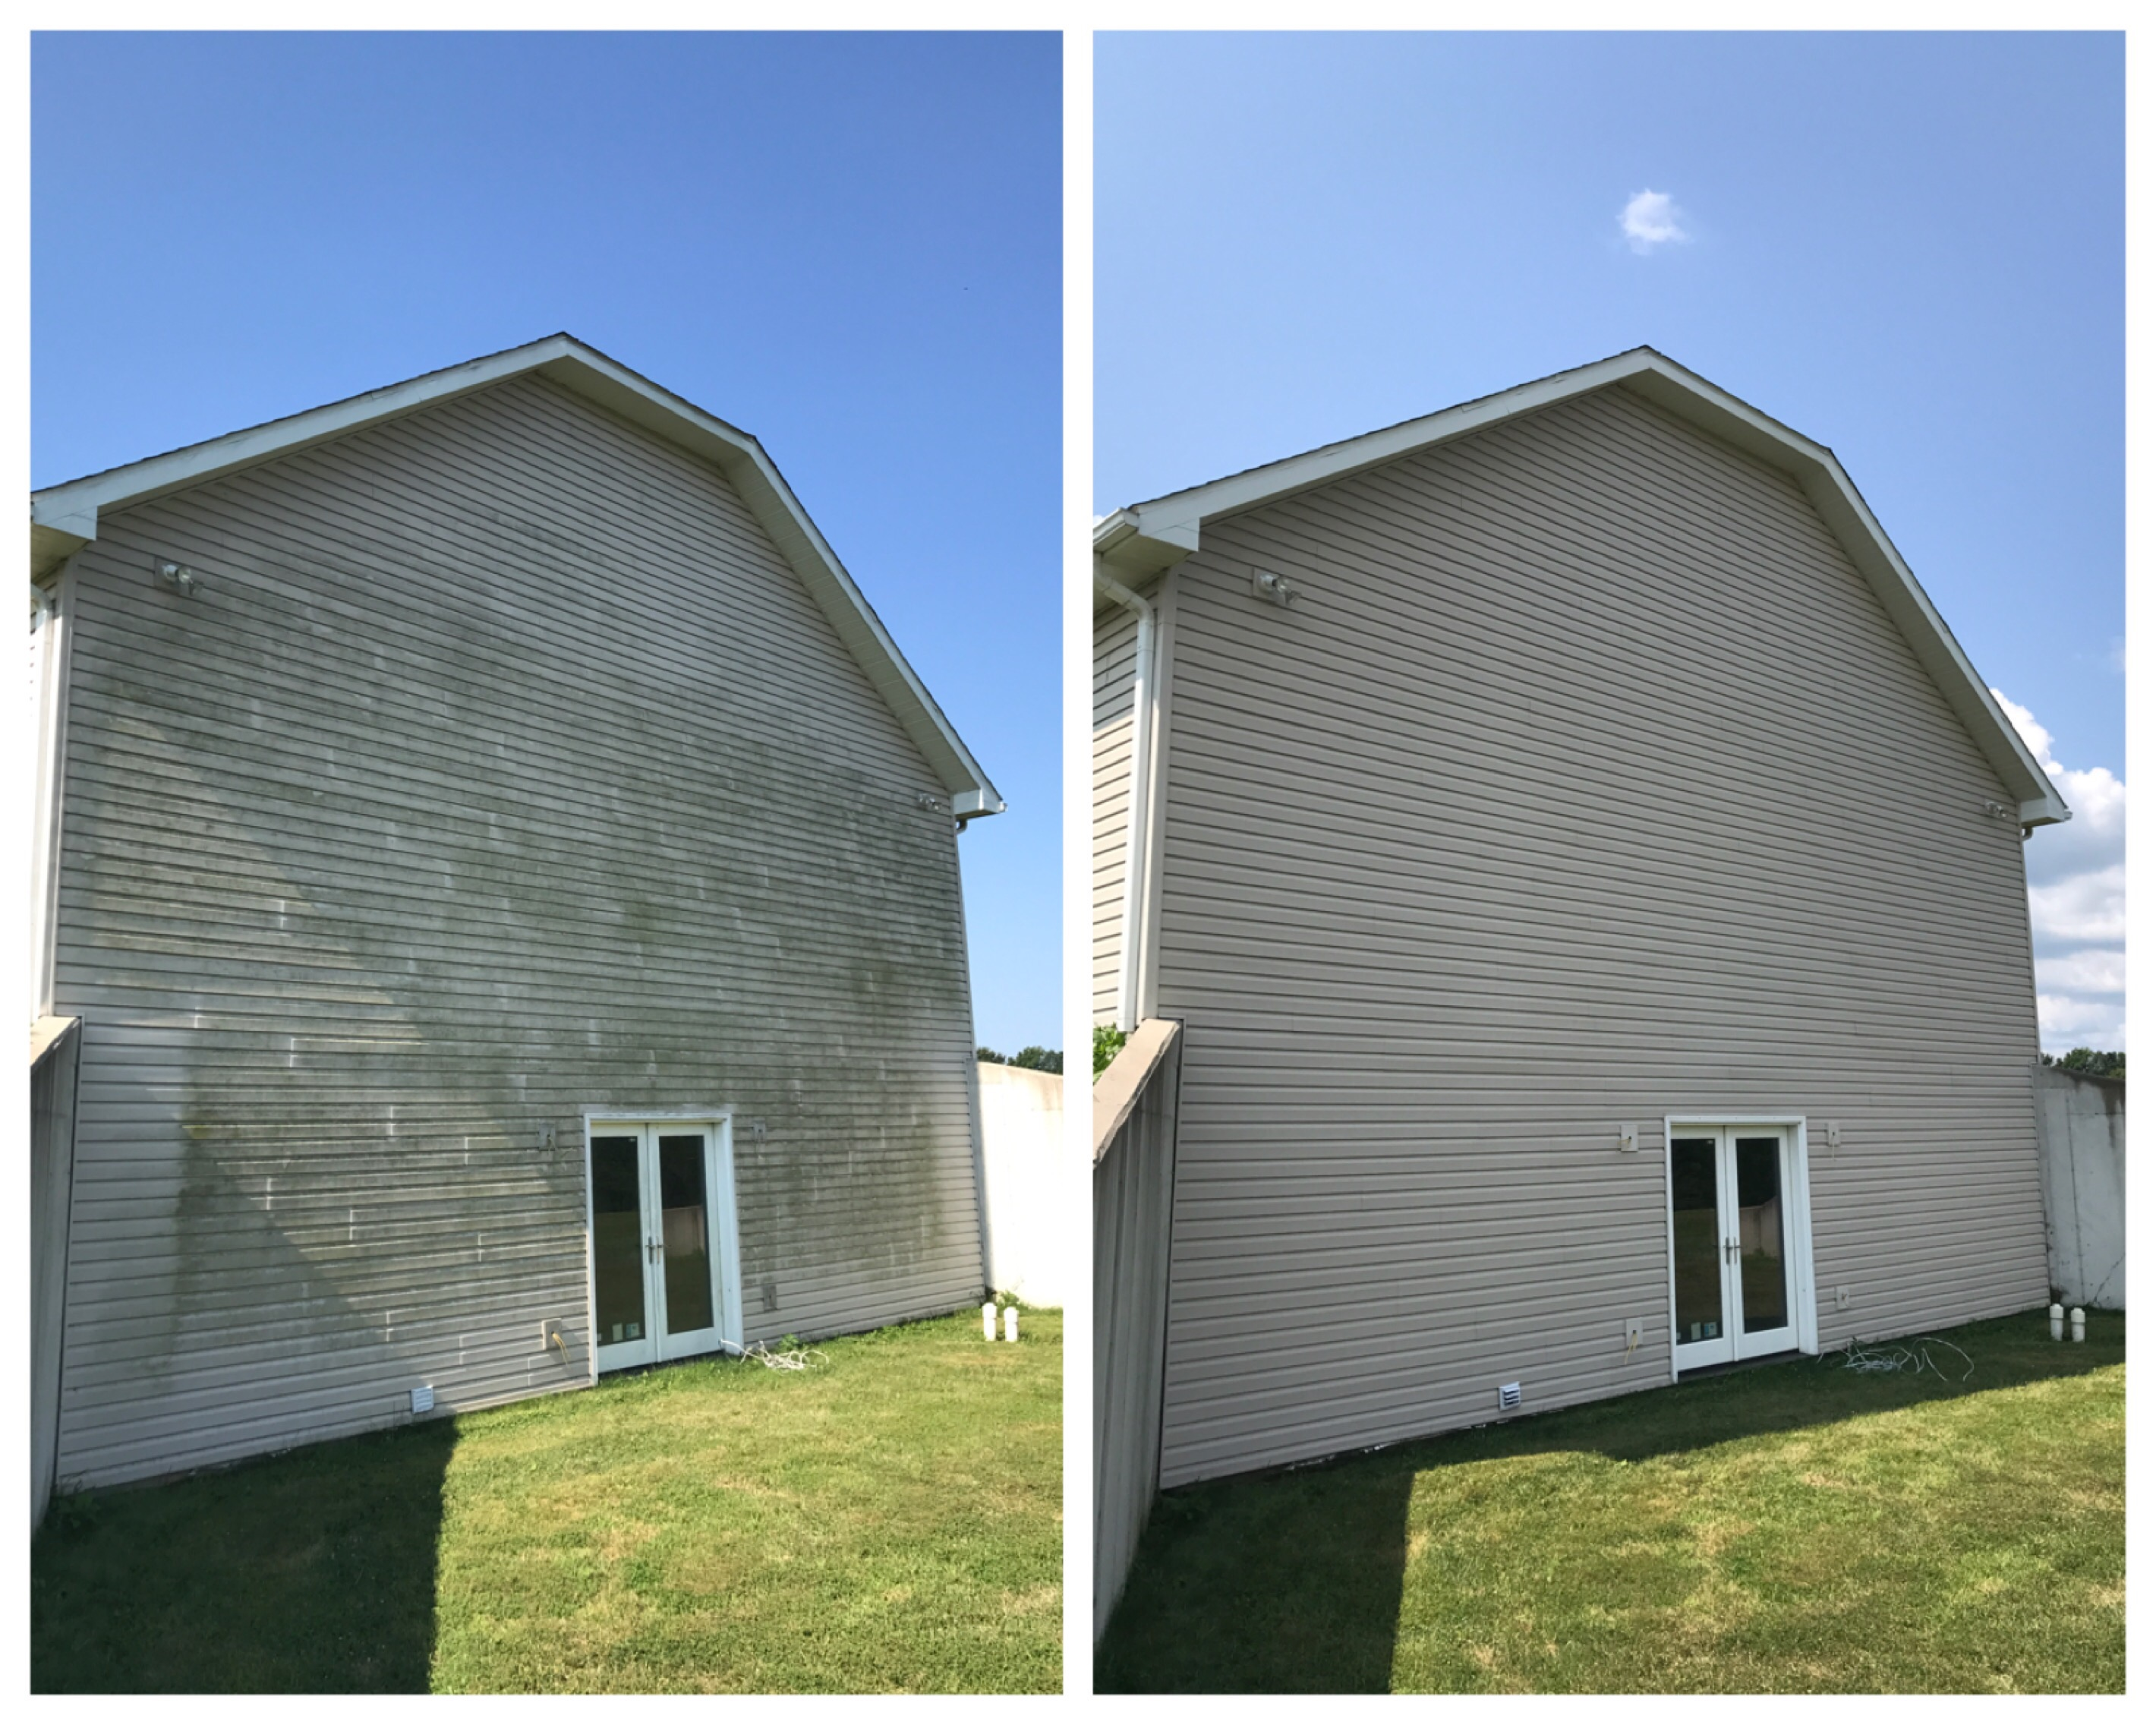 We Will Professionally Clean Your Home The Right Way And Safe Never Use High Pressure To Wash Houses Can Damage Siding